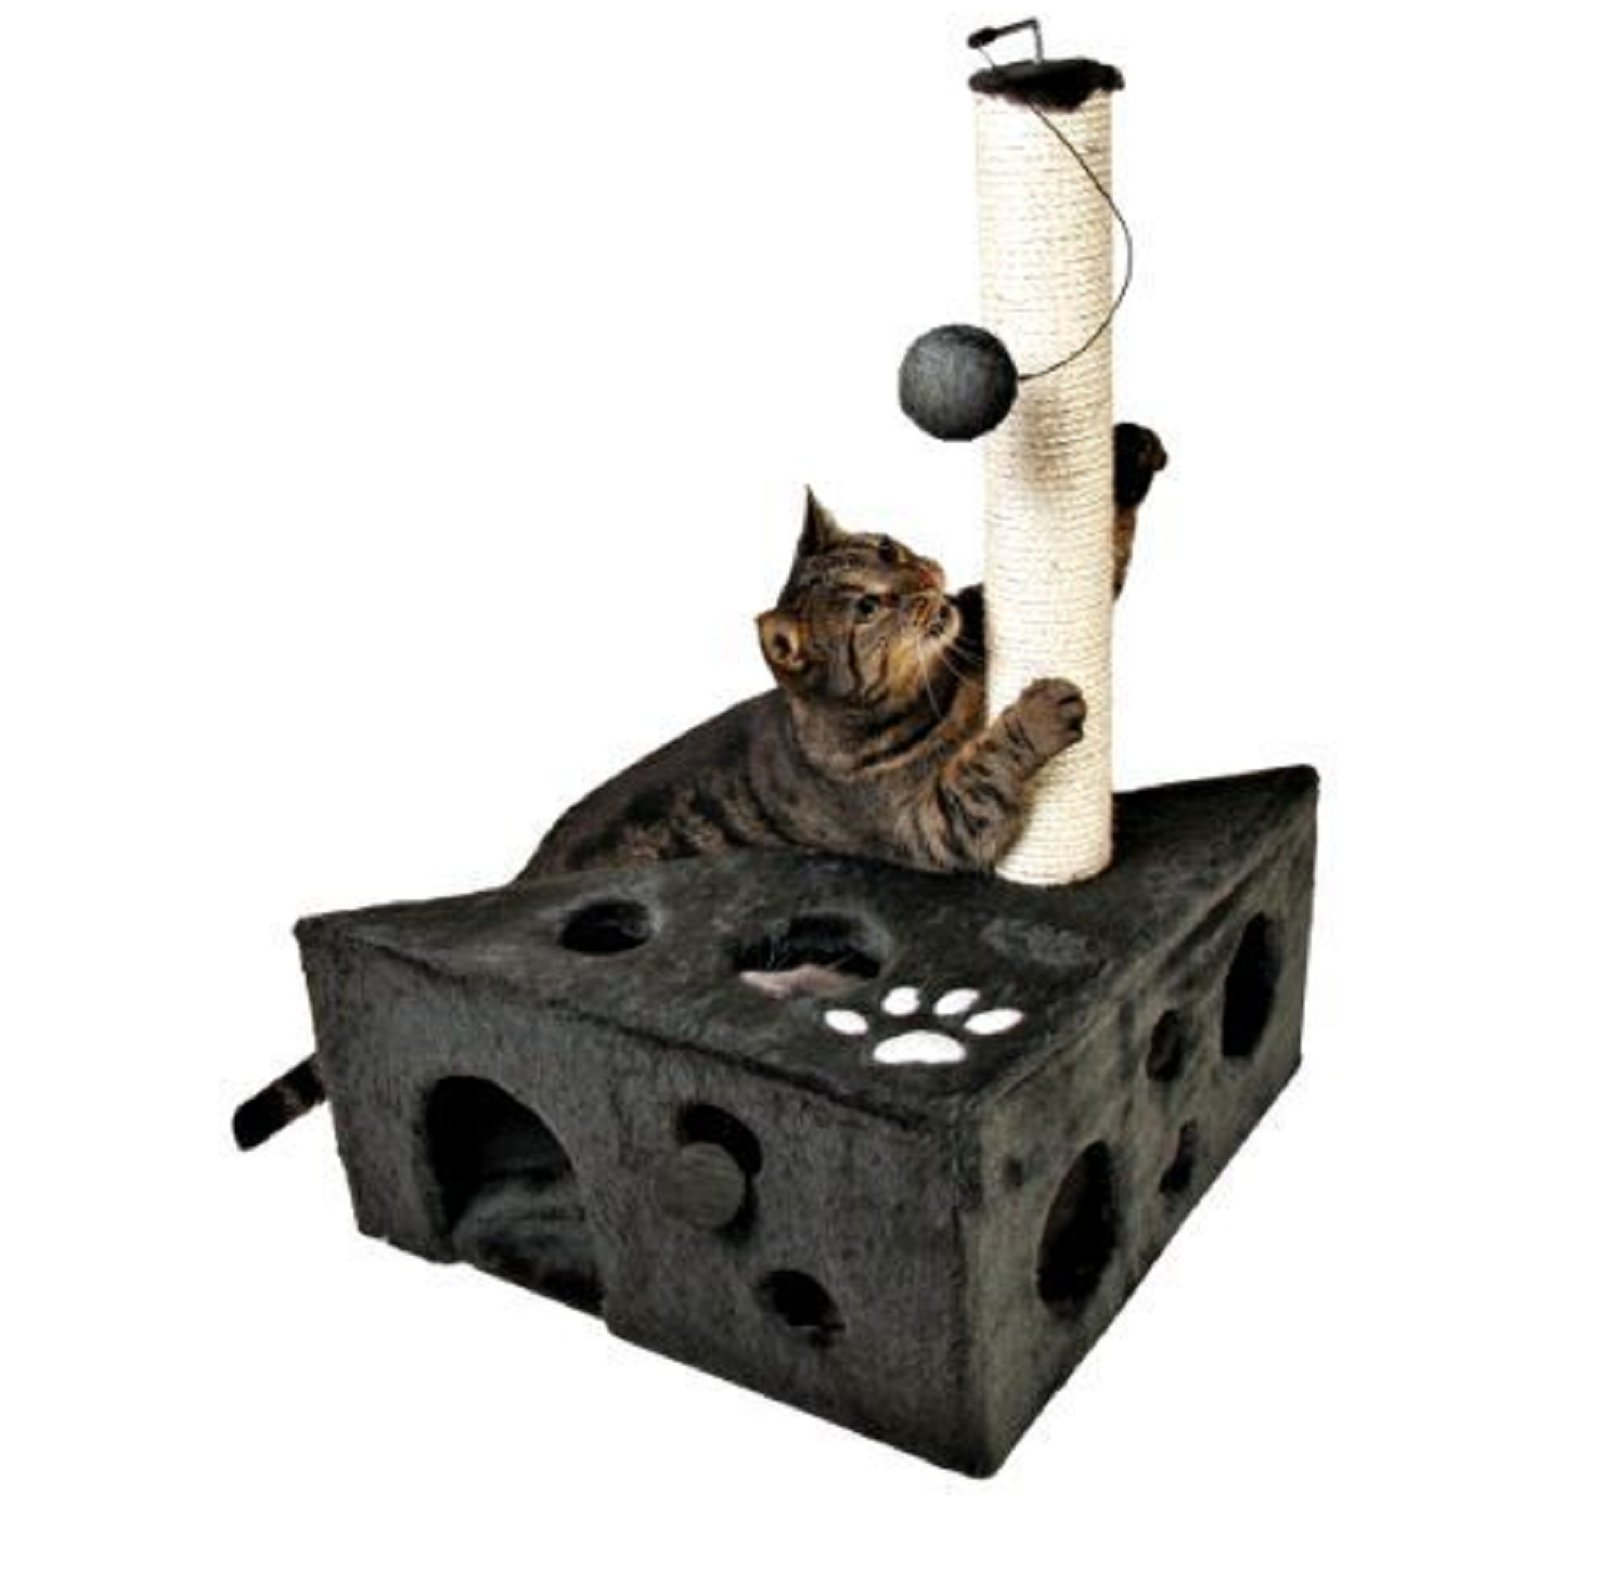 Hot Sale! Cat House Tower Scratcher Post Bed Condo Pet Play Kitten Toy Furniture Cave Tree